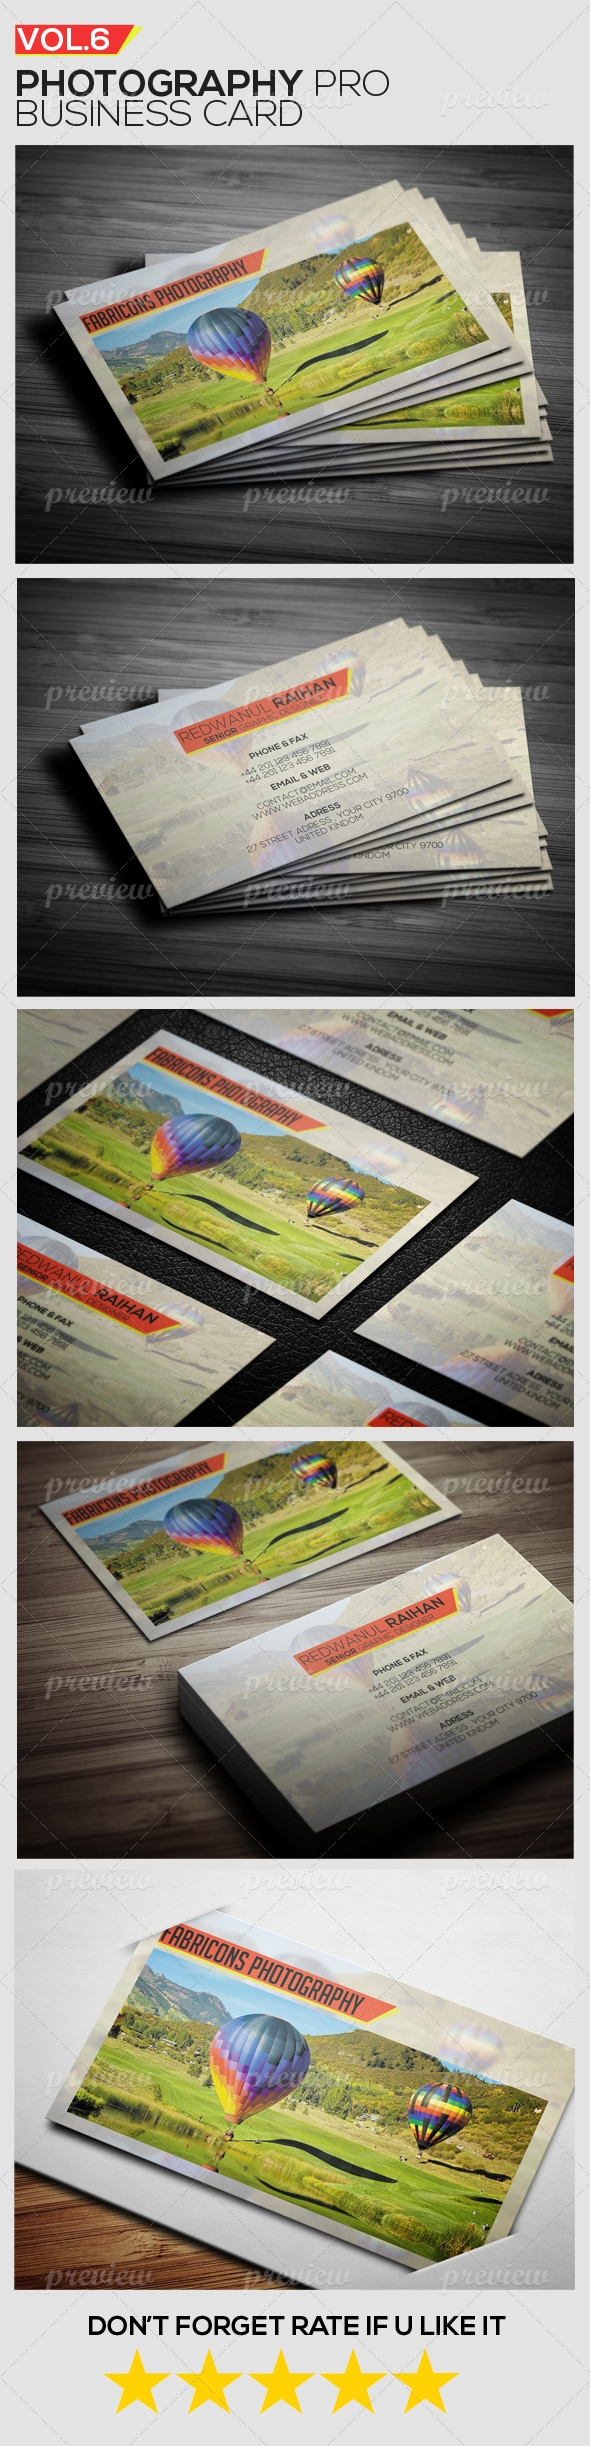 Photography Pro Business Card Vol.2